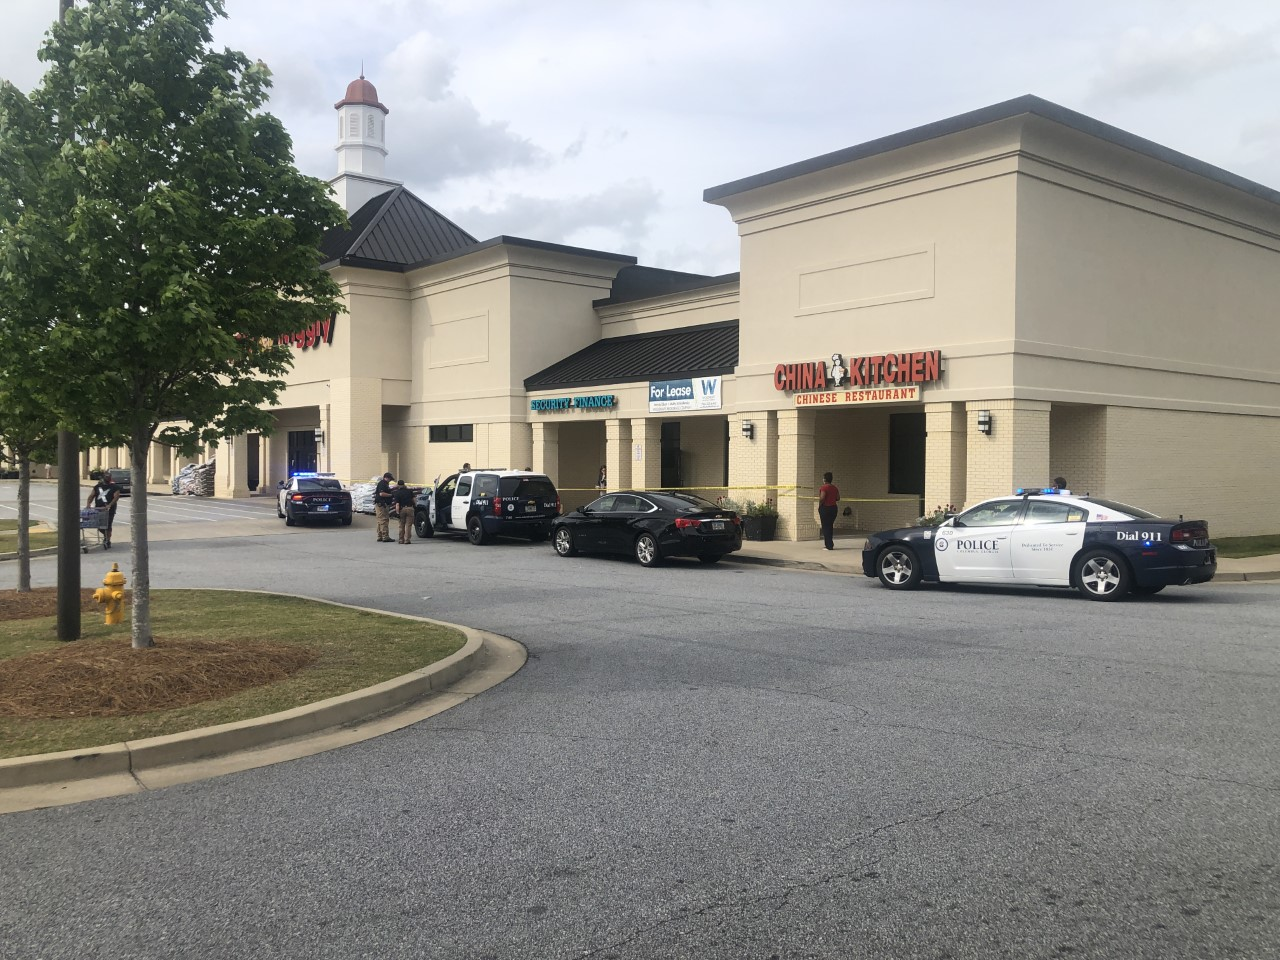 Police outside Piggly Wiggly on Floyd Road in Columbus, Ga.